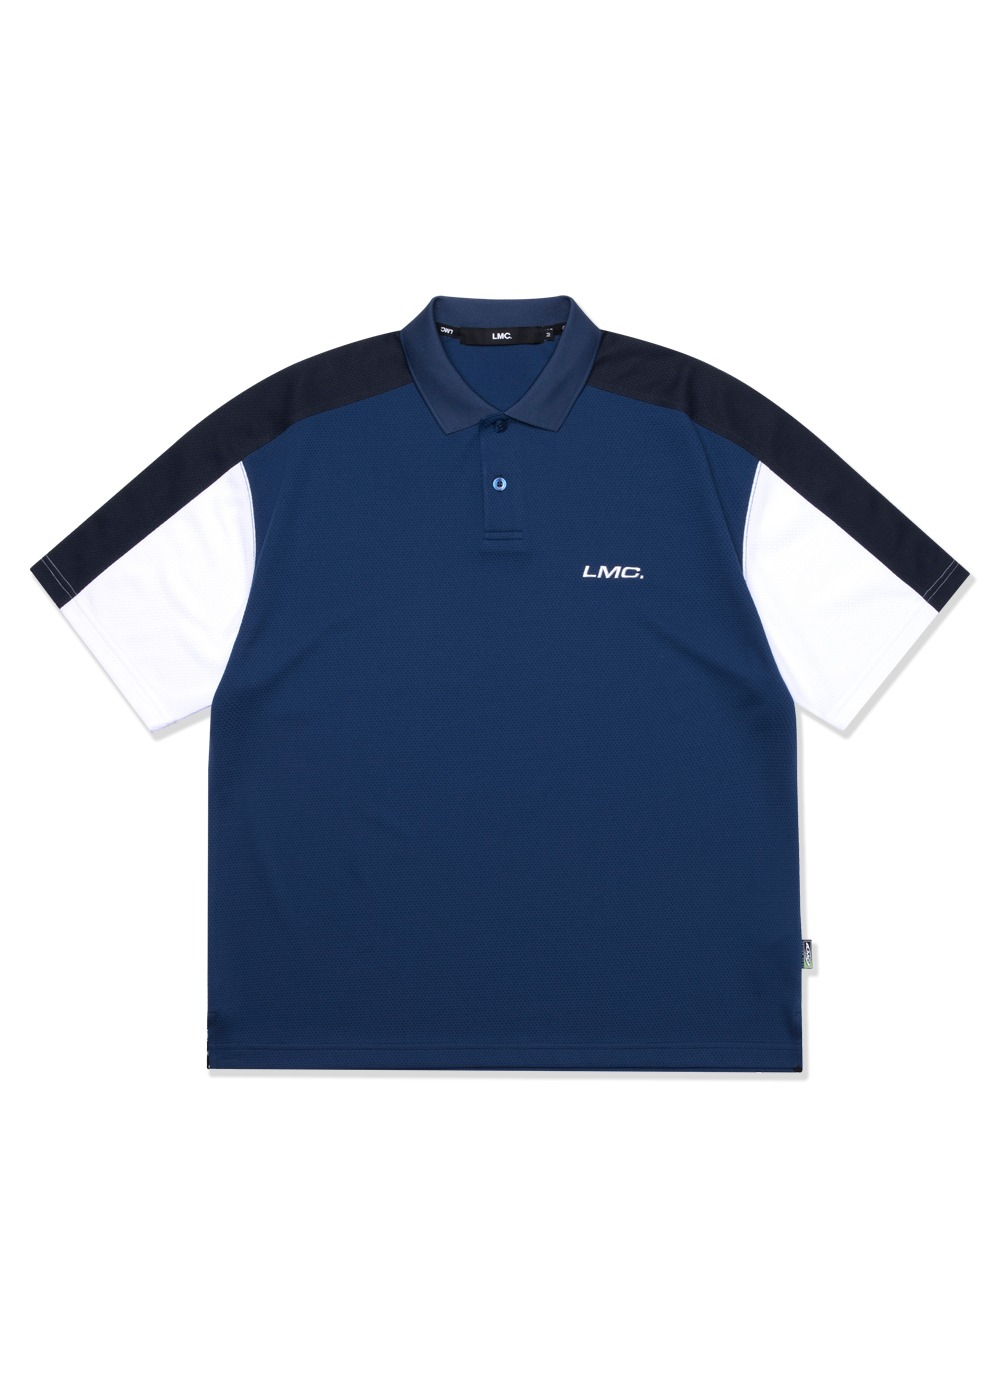 LMC ACTIVE GEAR MESH POLO SHIRT navy